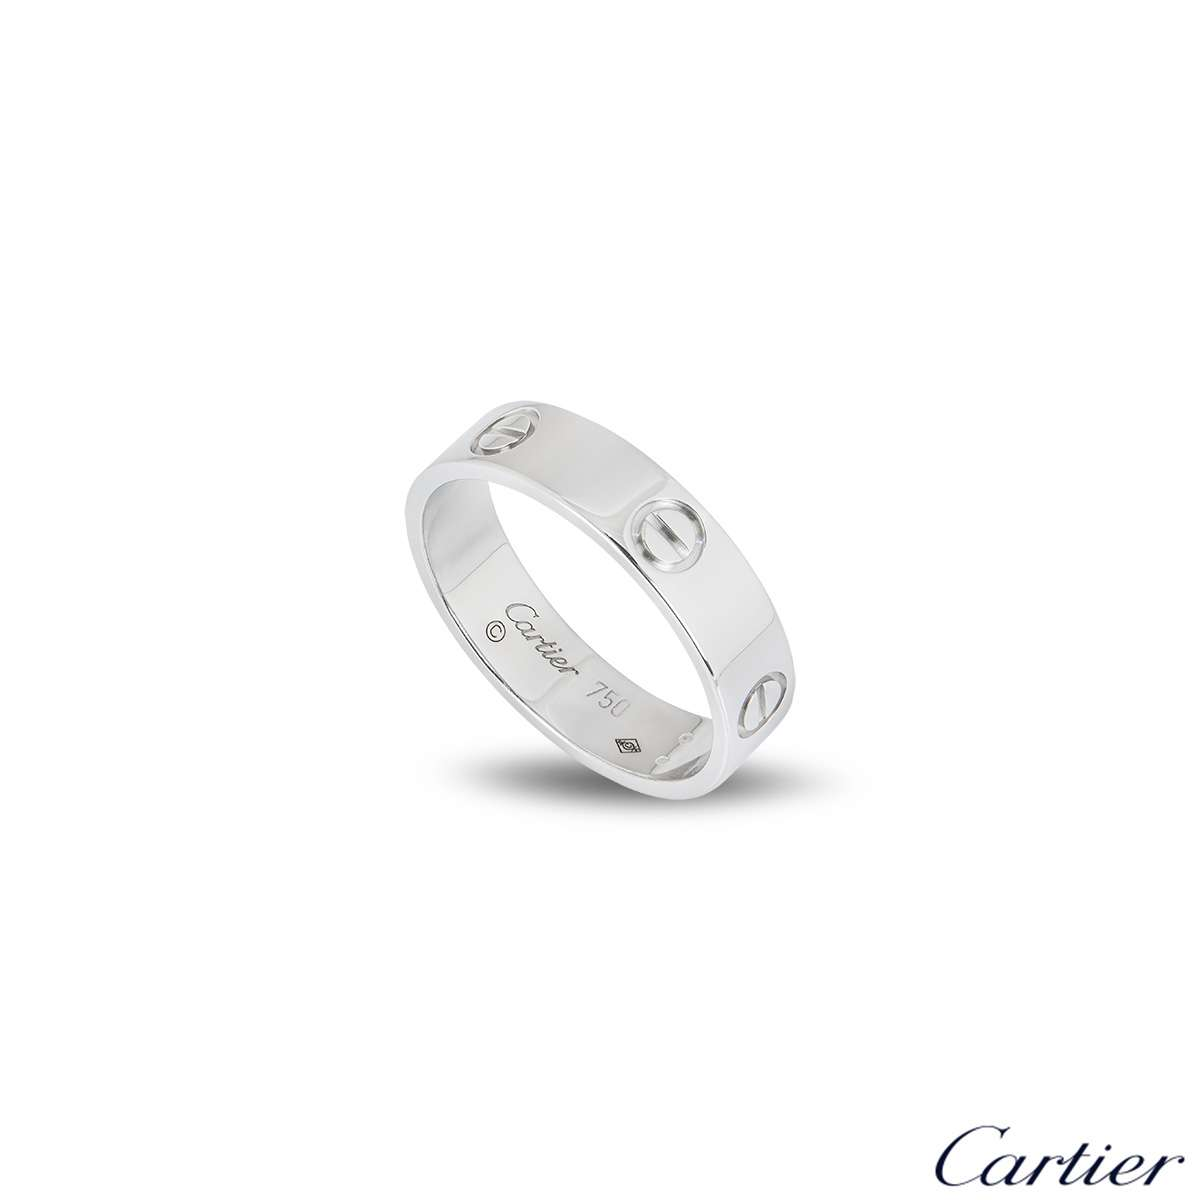 Cartier White Gold Plain Love Ring Size 49 B4084700